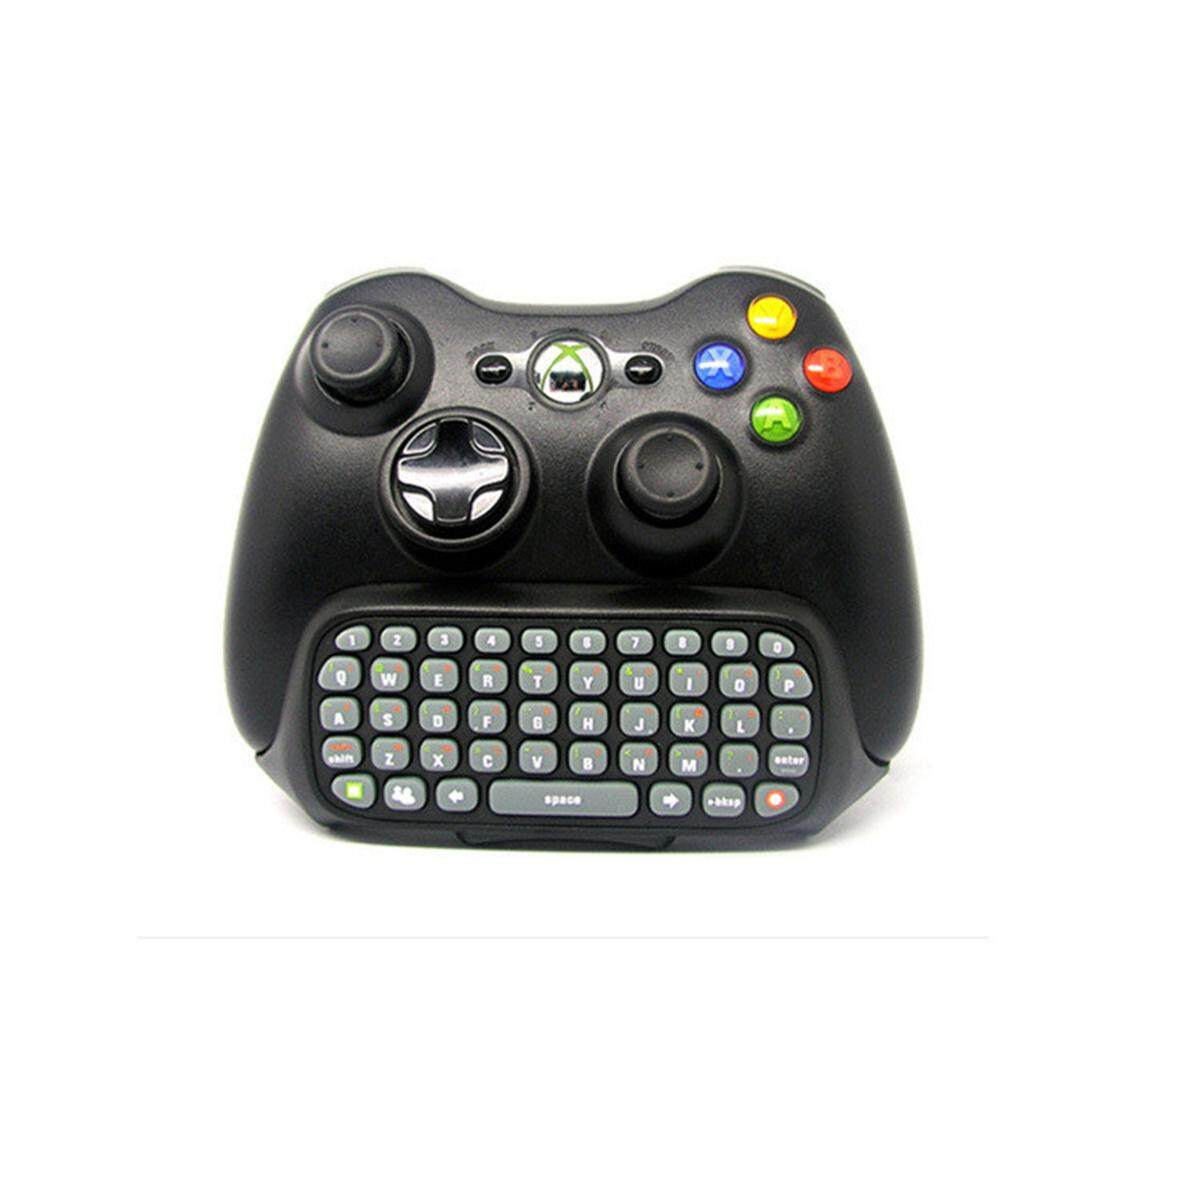 Mini 2.4ghz Wireless Keyboard For Xbox One Accessory Controller Chatpad Keypad By Glimmer.